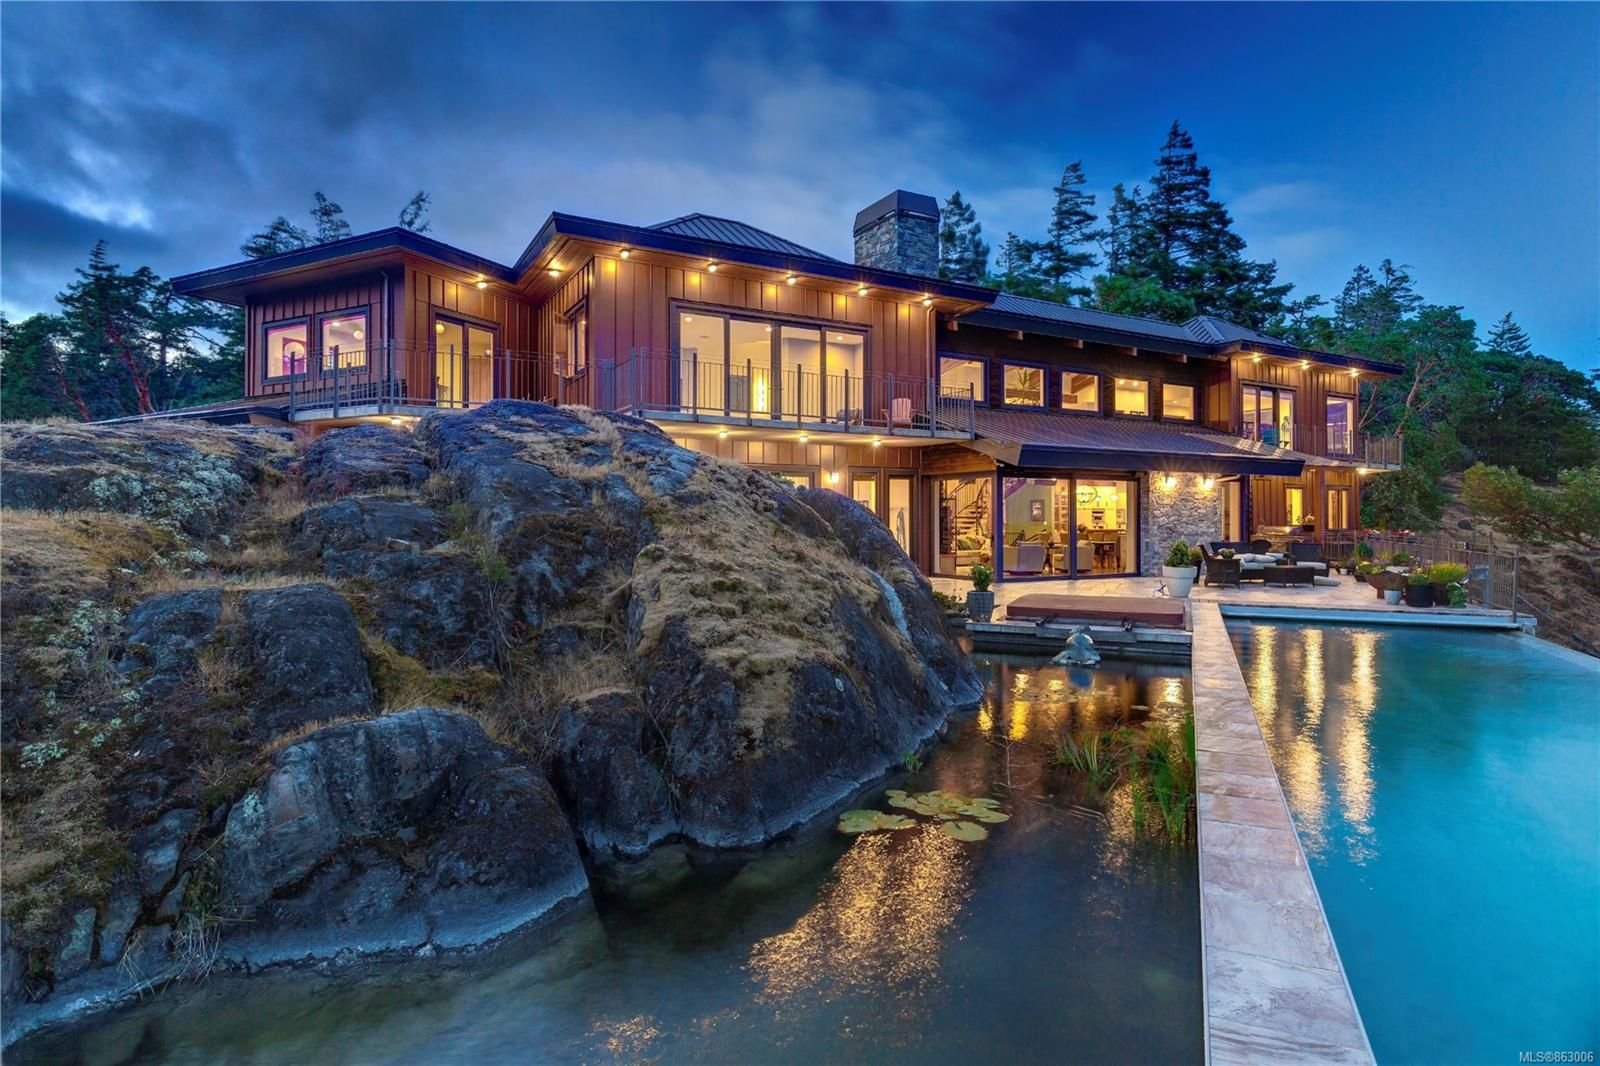 Main Photo: 396 Ocean Spring Terr in : Sk Becher Bay House for sale (Sooke)  : MLS®# 863006